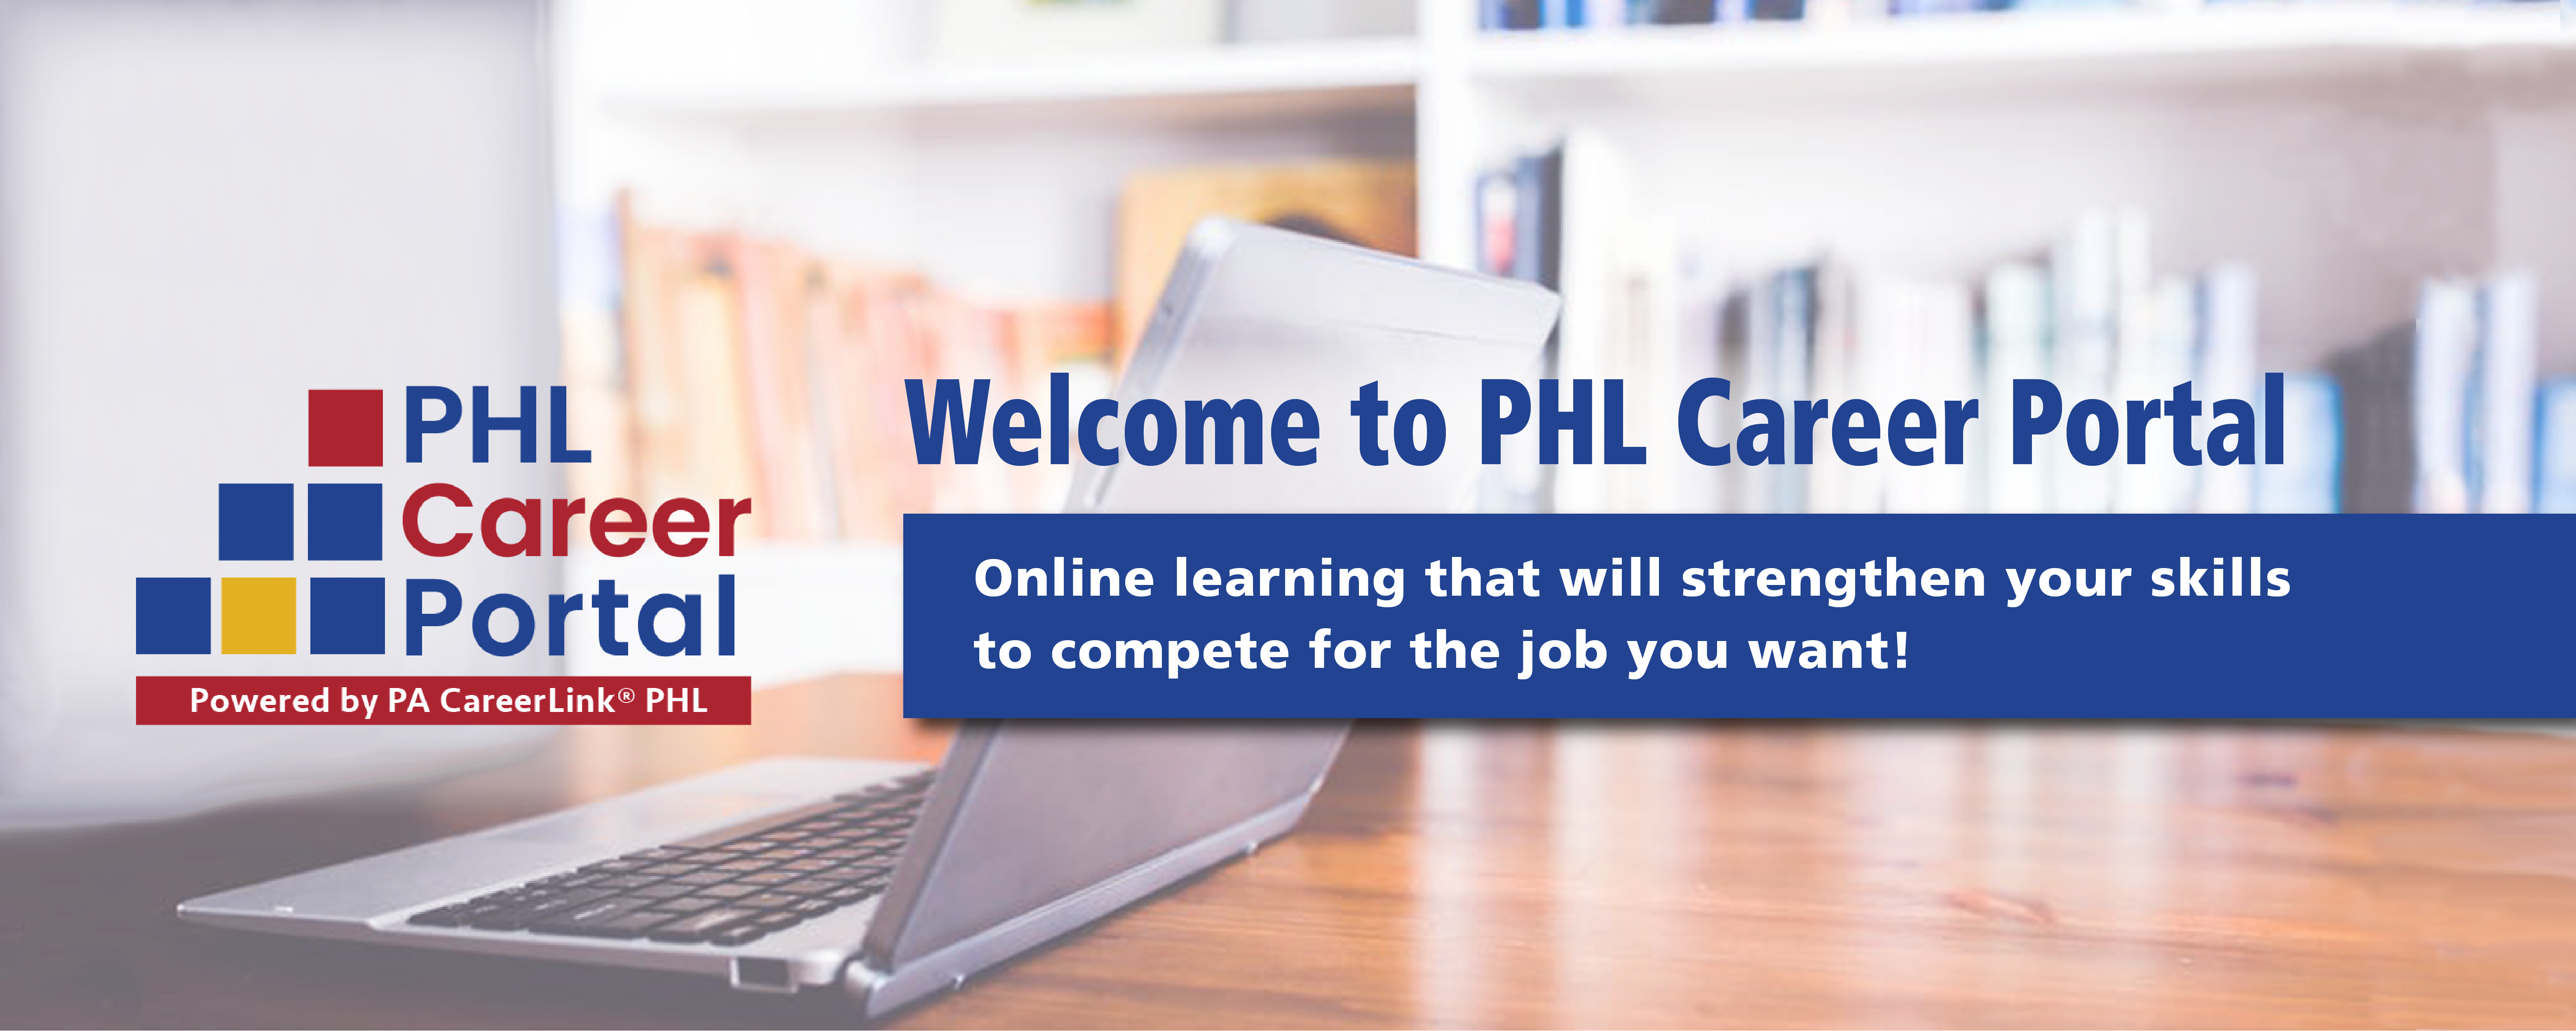 Click here to register. Welcome to PHL Career Portal.